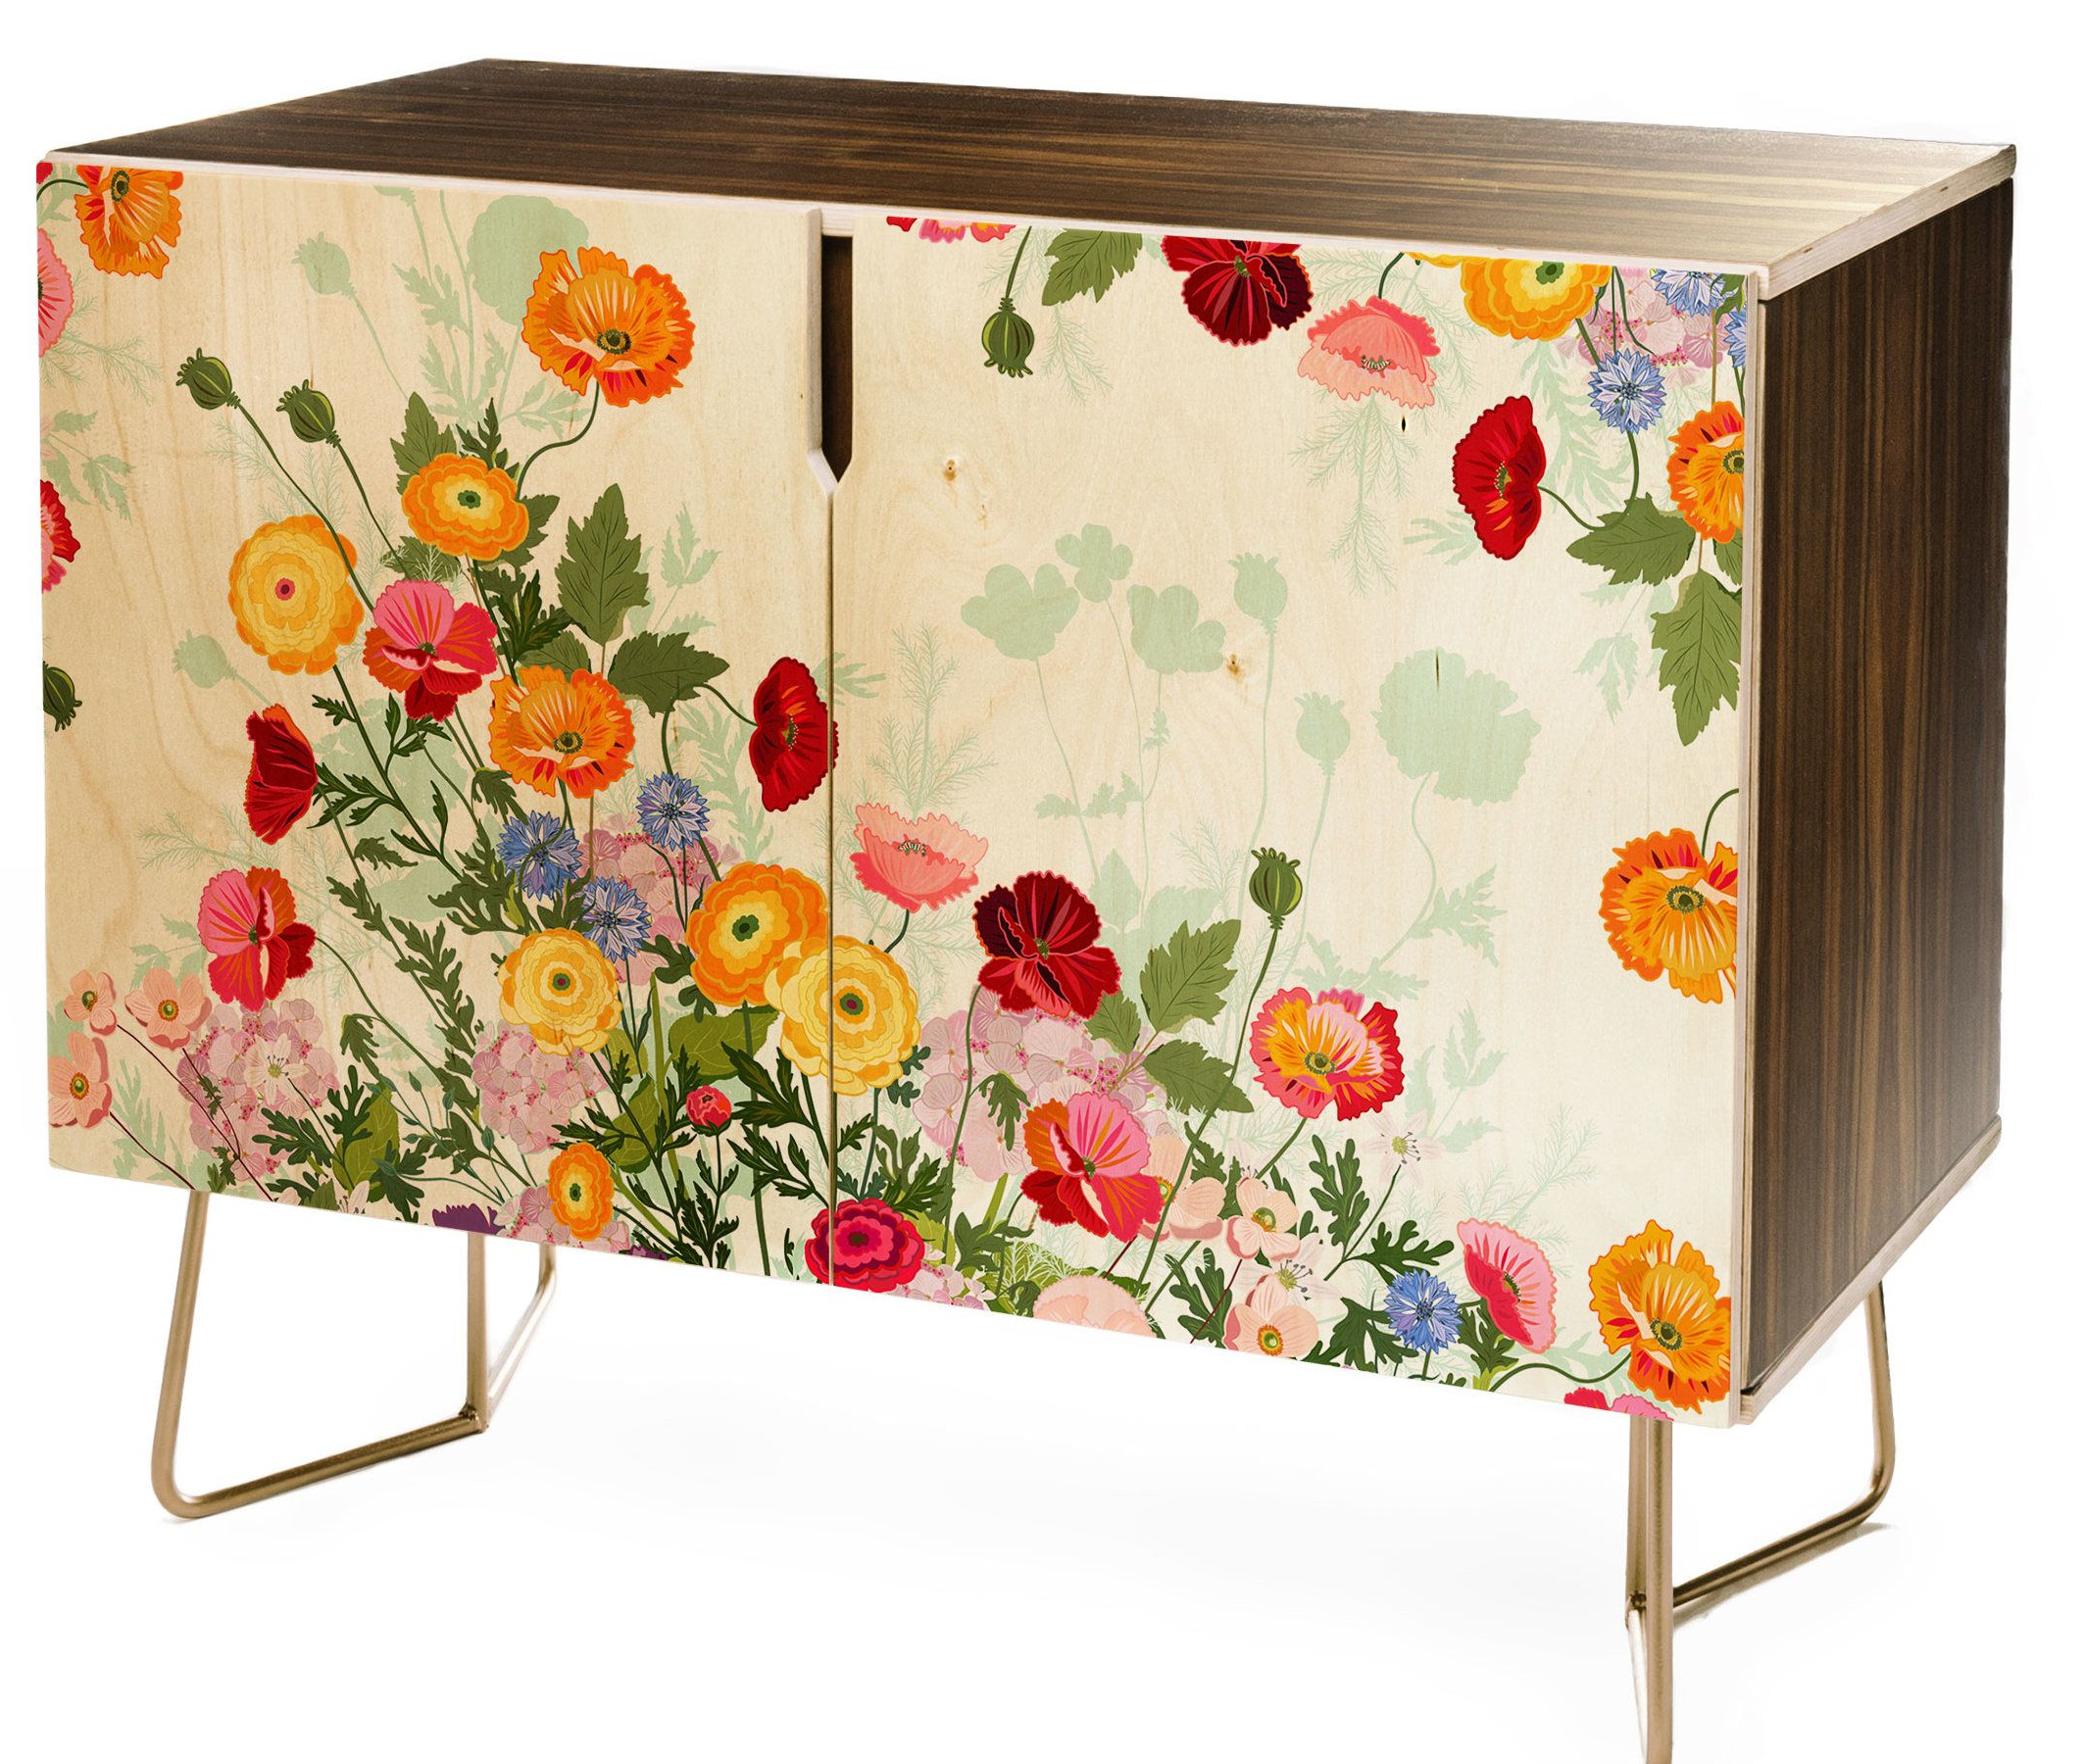 Emmaline Sideboards Within Preferred East Urban Home Iveta Abolina Emmaline Credenza In (View 3 of 20)